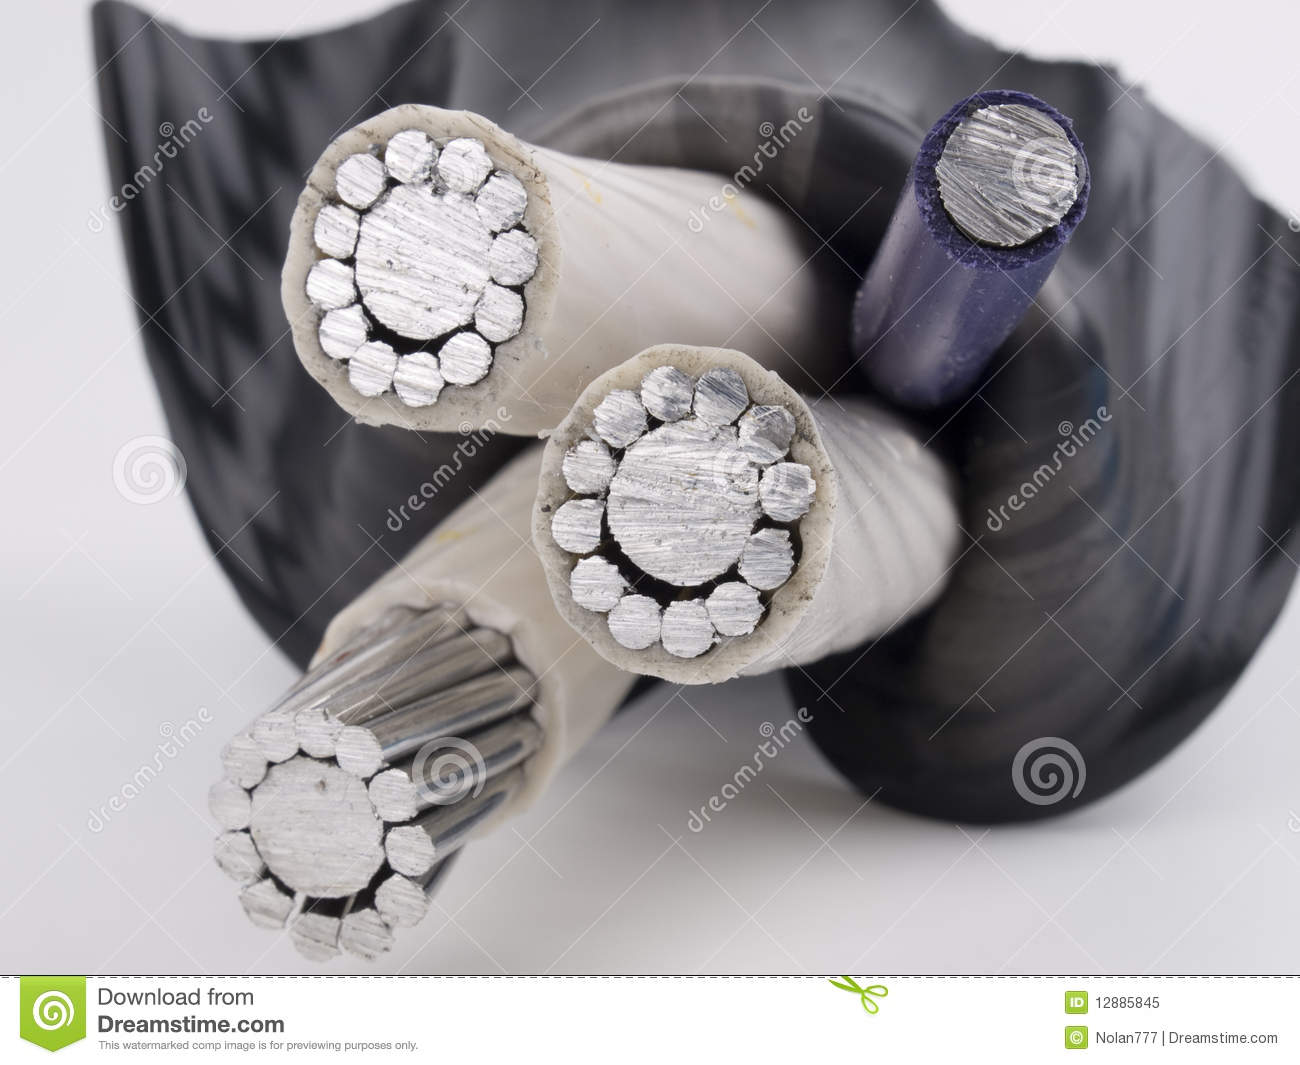 Insulated power cable